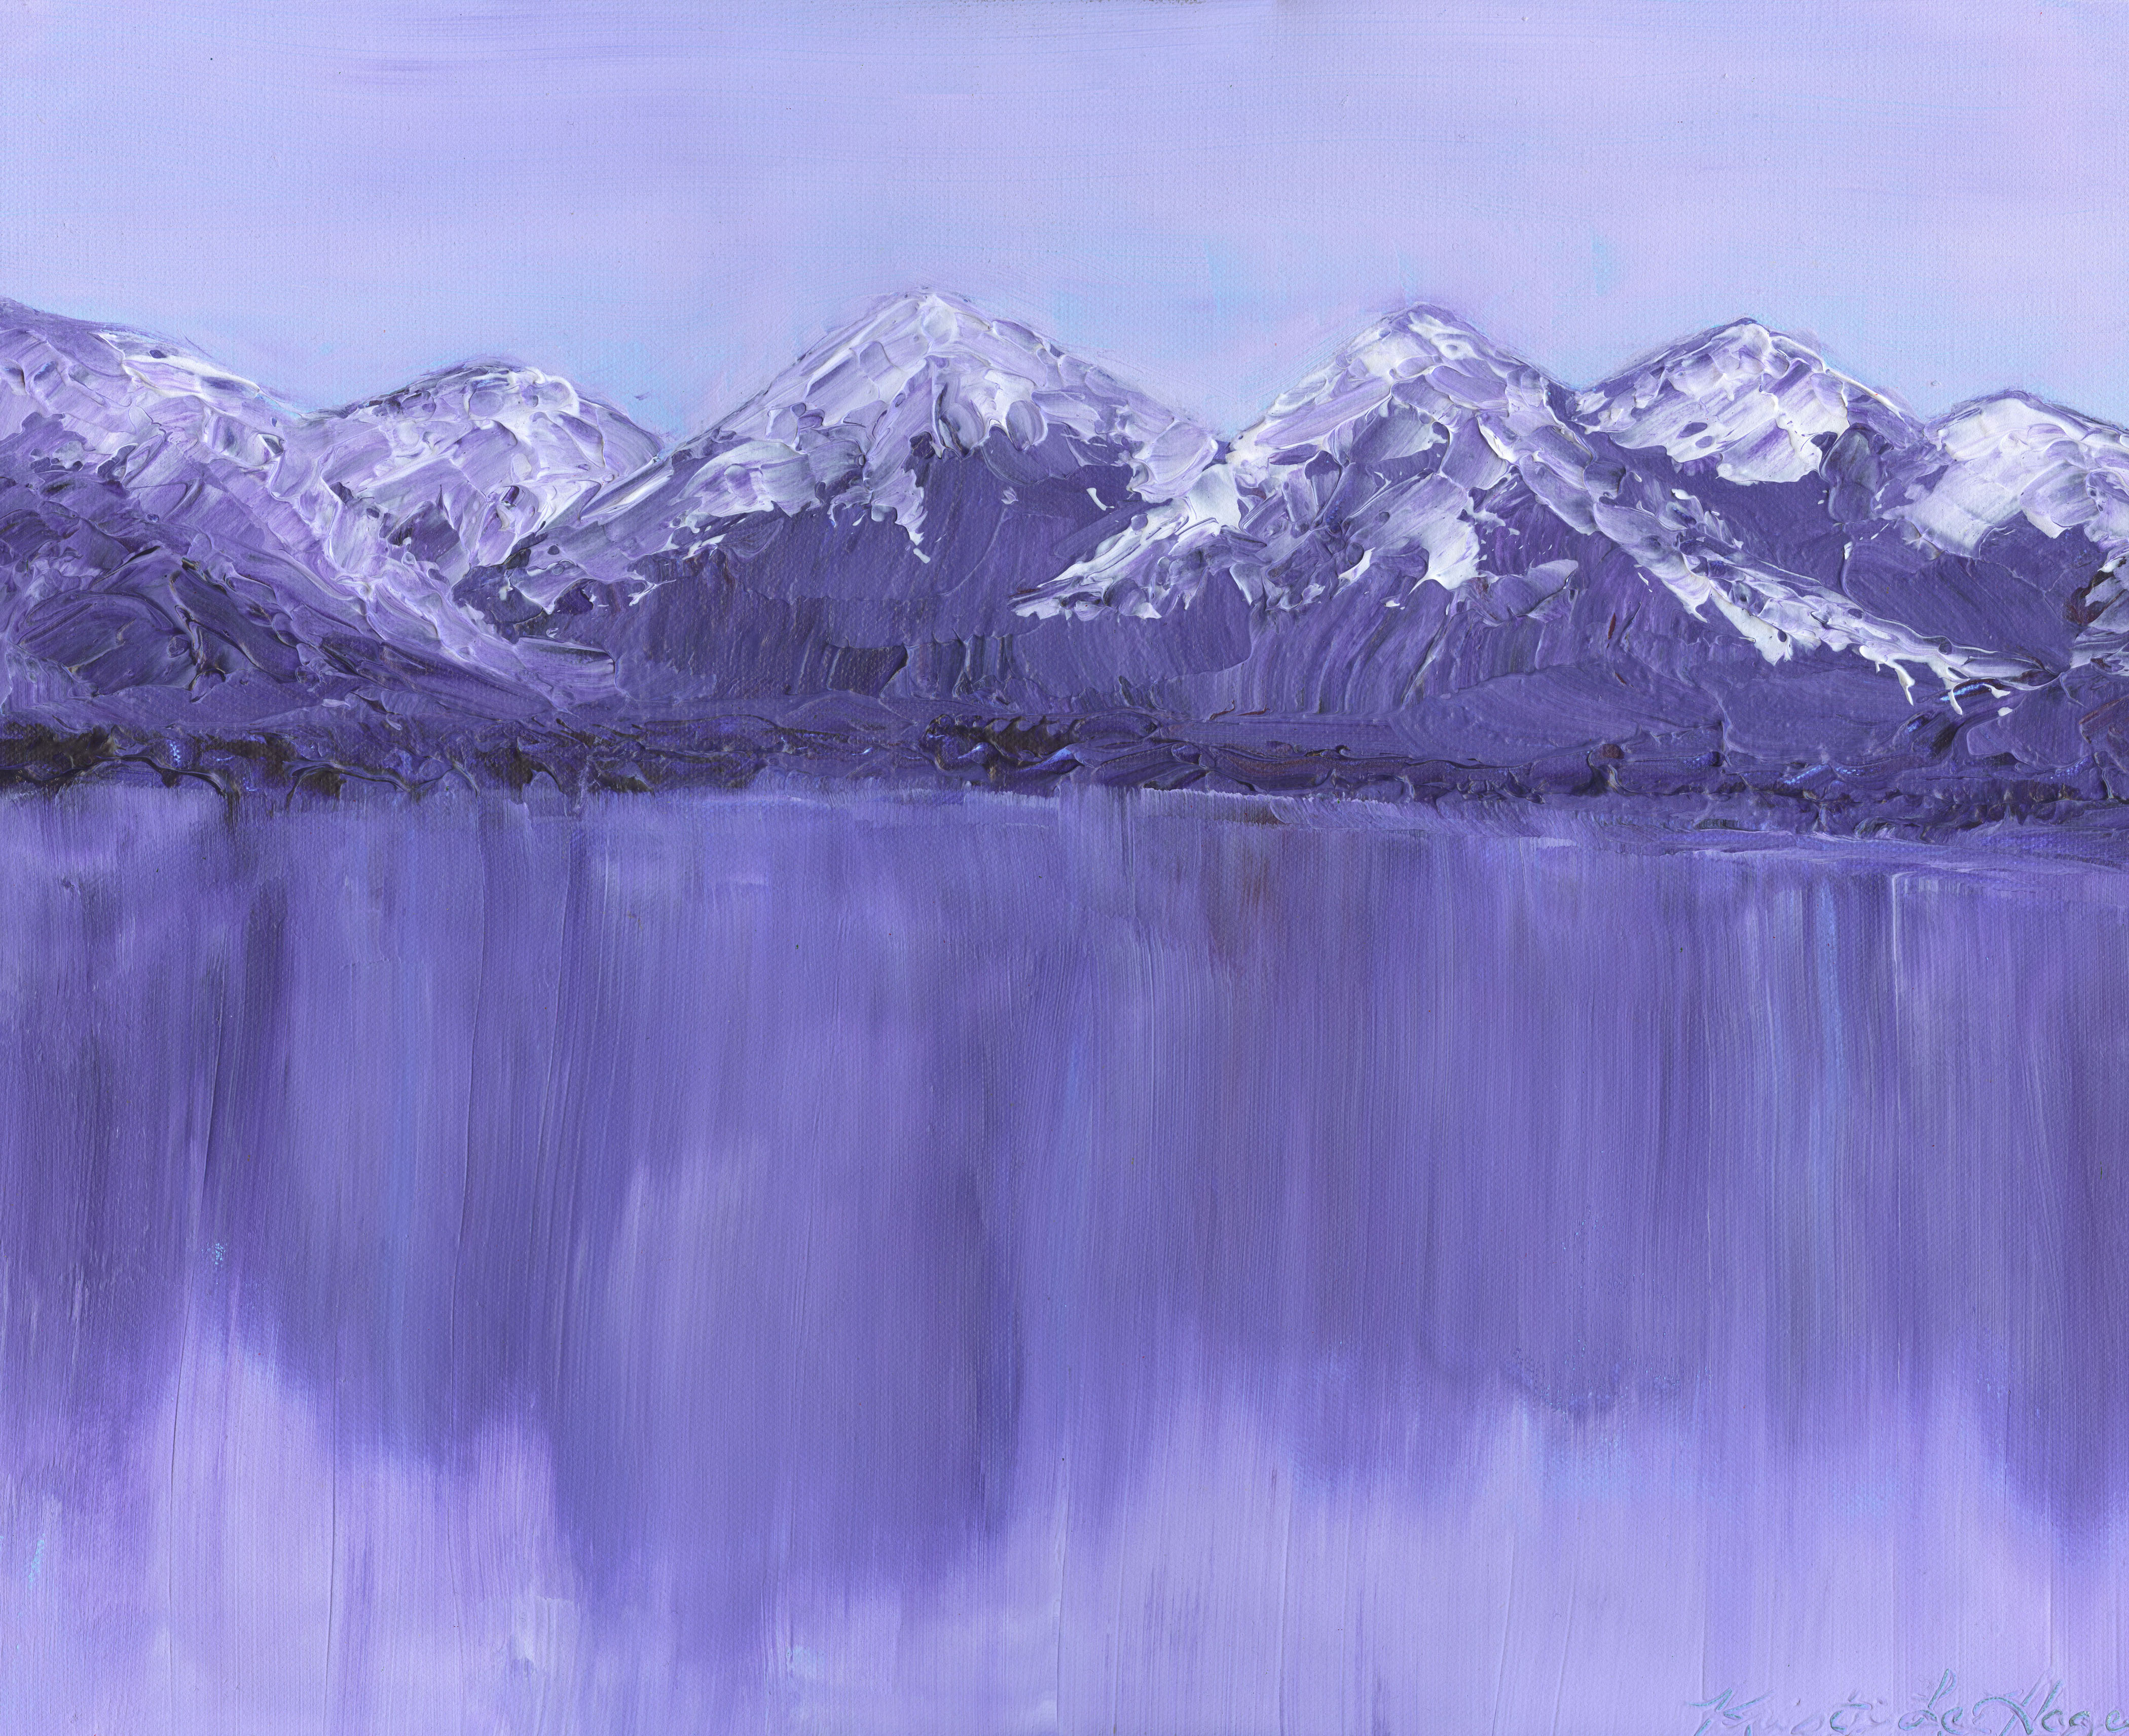 Mirrored Mountains - Acrylic - 16 X 20 - $300